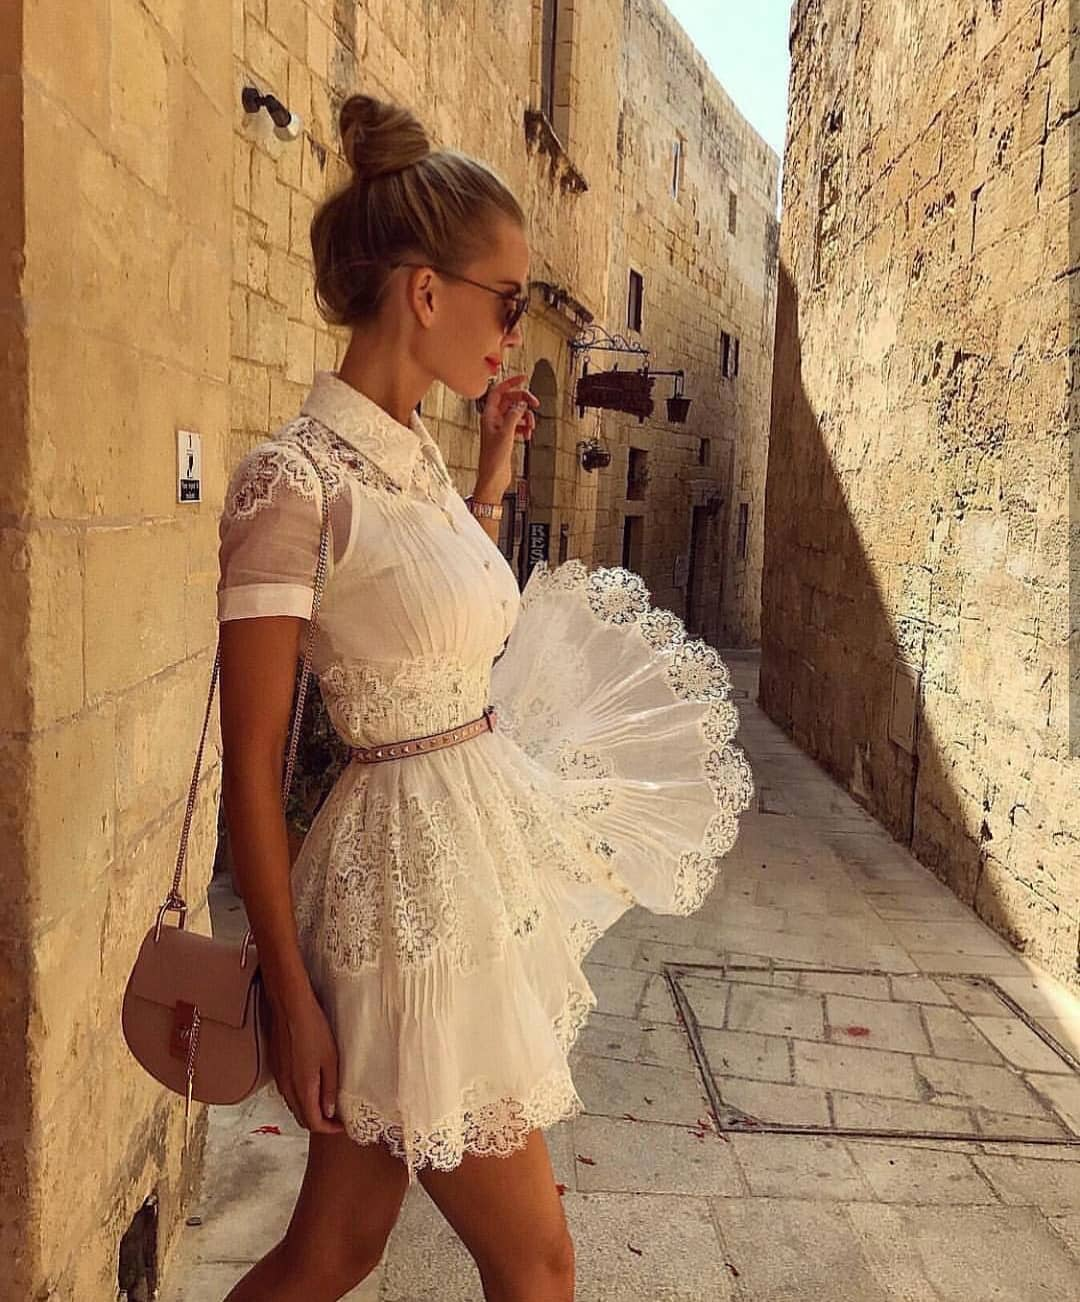 White Short Lace Shirtdress For Summer Vacation 2020